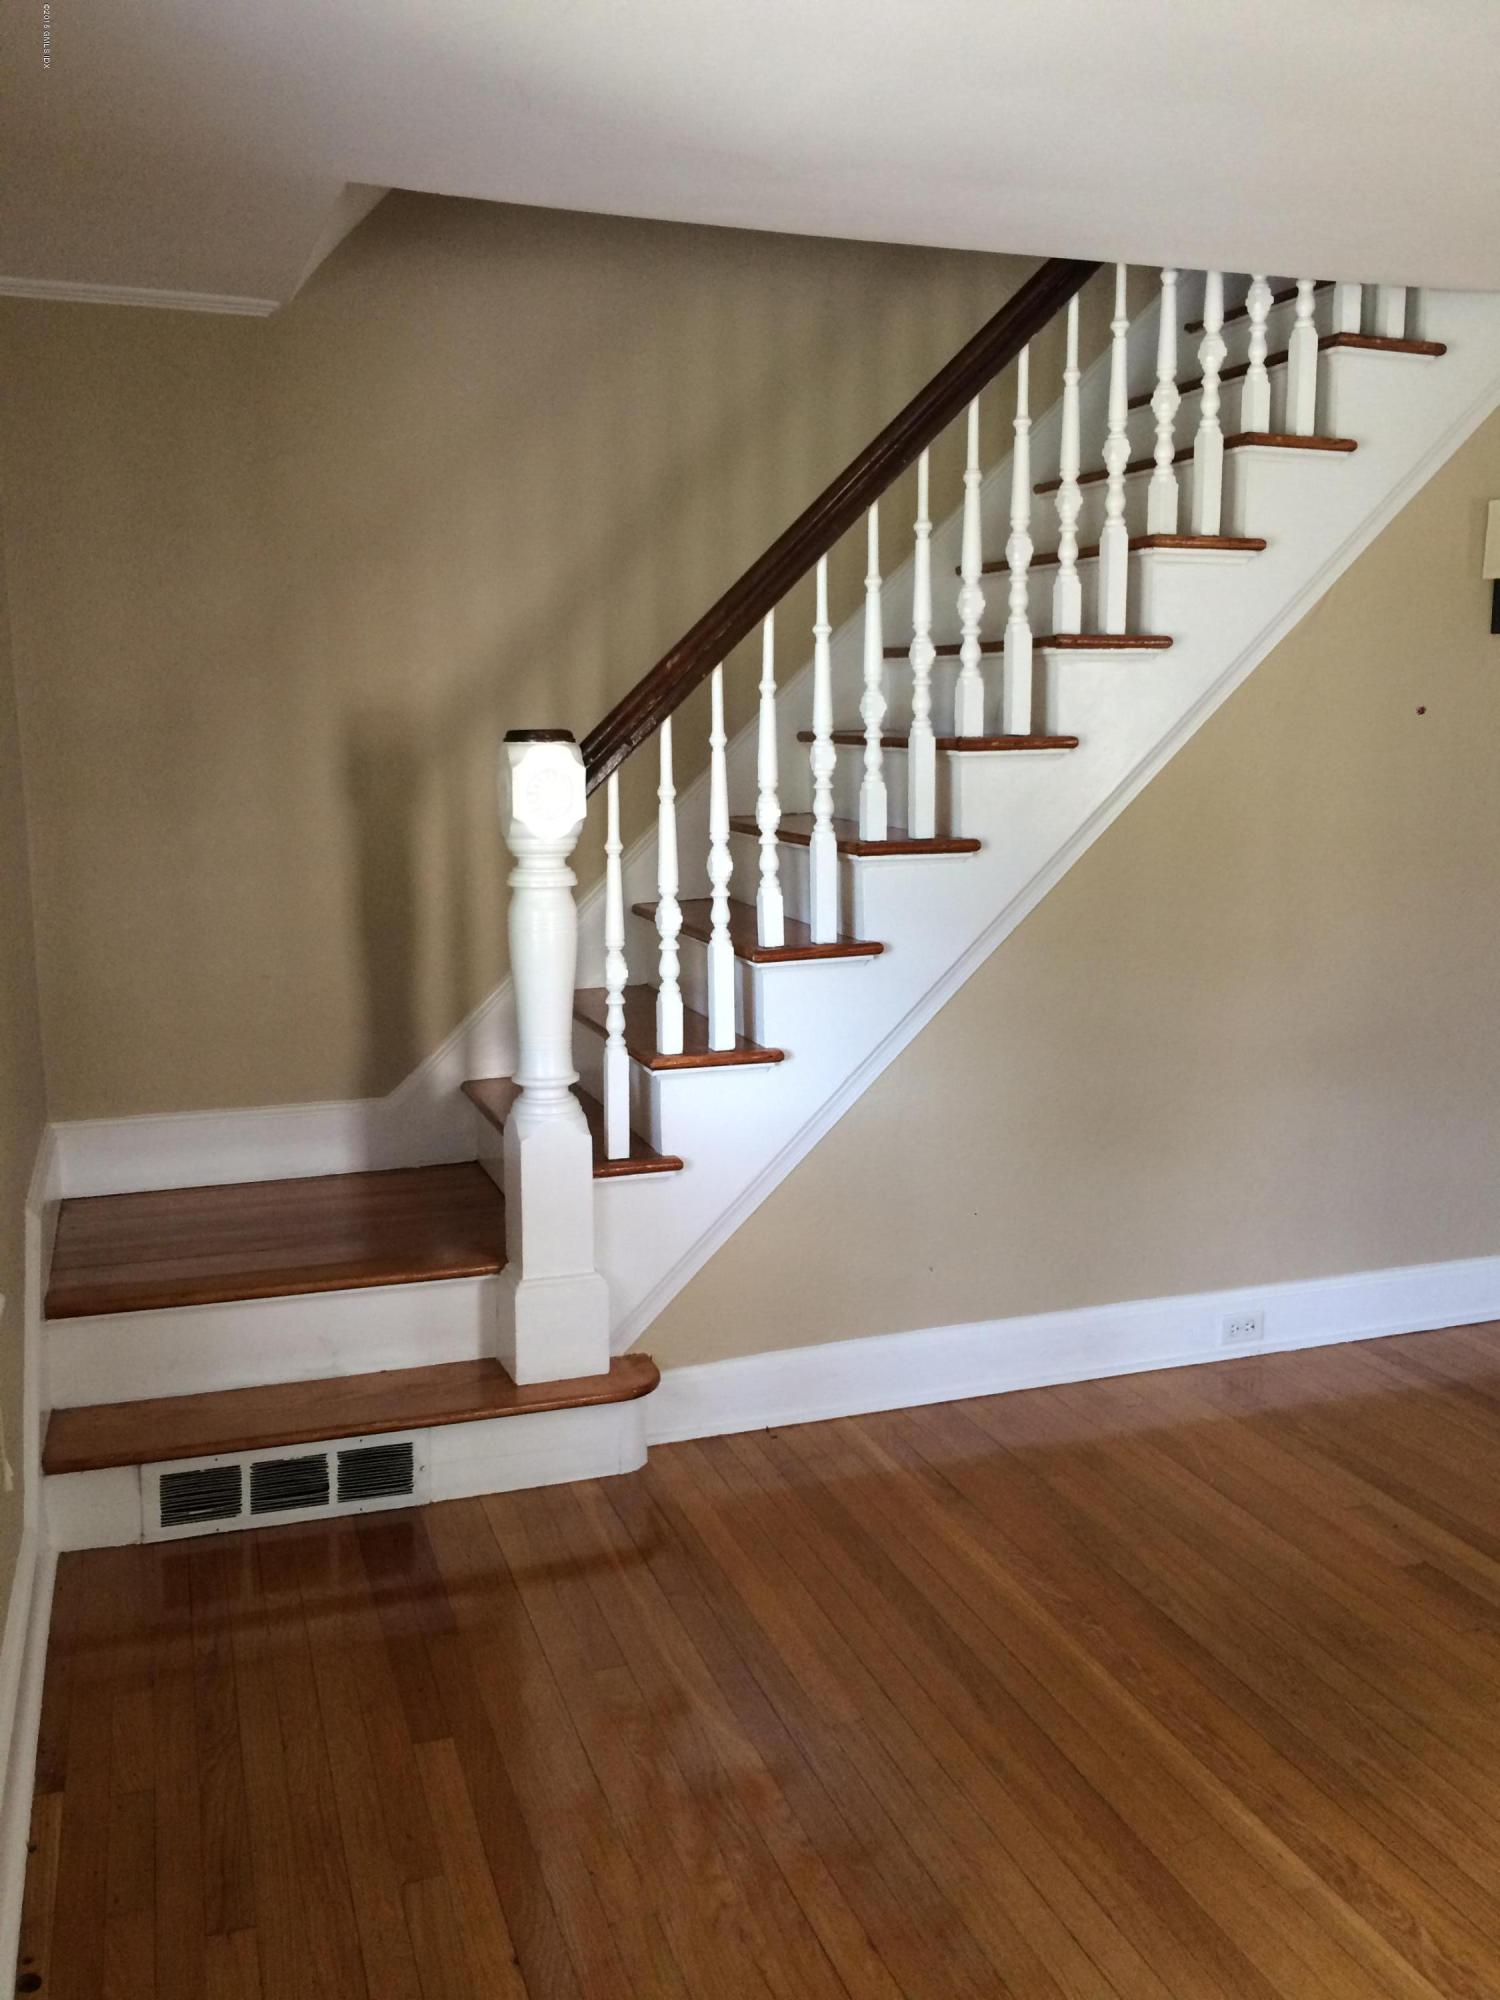 18 Home Place,Greenwich,Connecticut 06830,2 Bedrooms Bedrooms,1 BathroomBathrooms,Single family,Home,105056